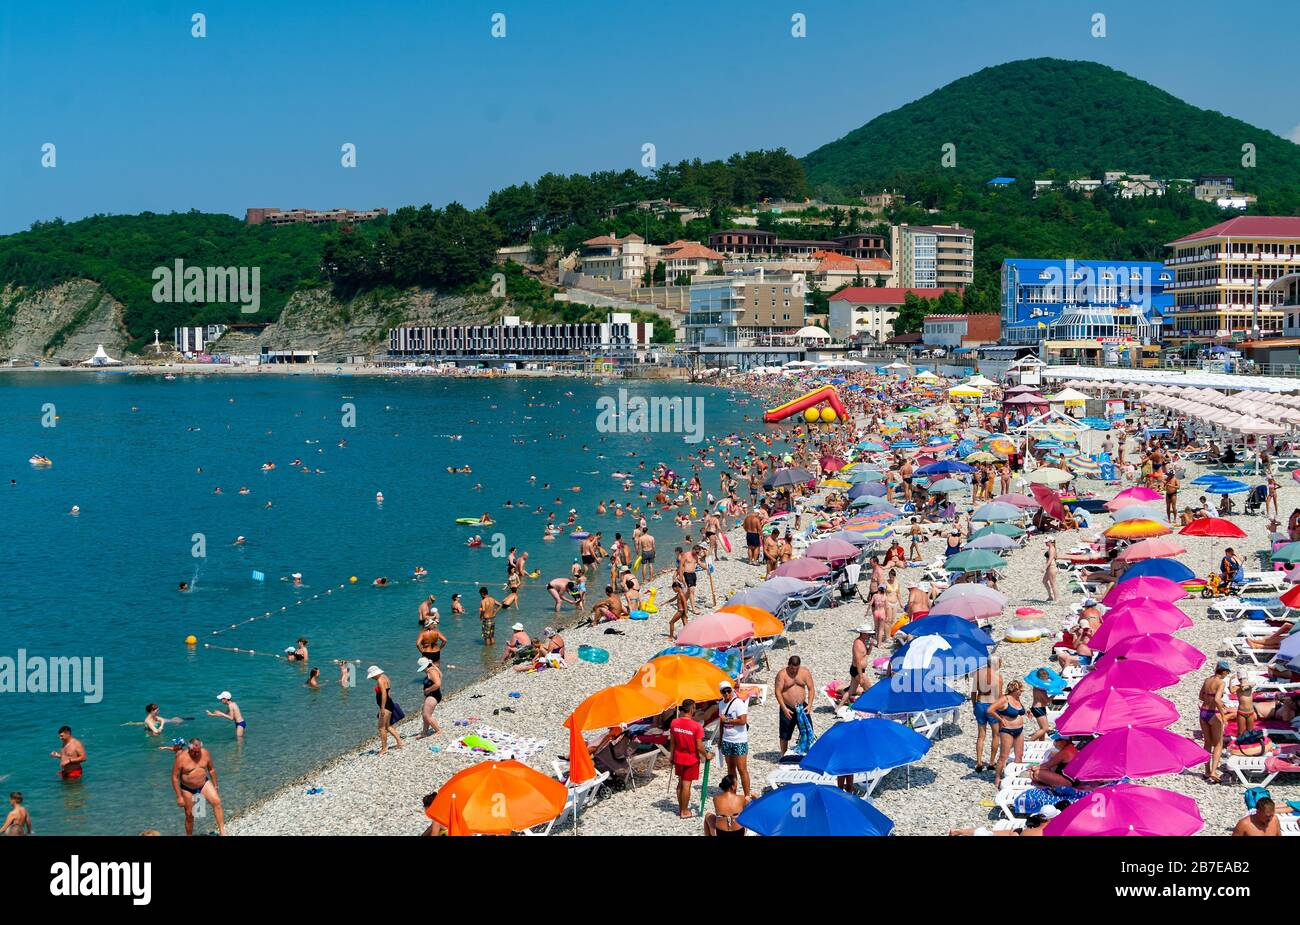 Crowds Of Bathers On The Beach At Black Sea Olginka Krasnodar Krai Russia Stock Photo Alamy